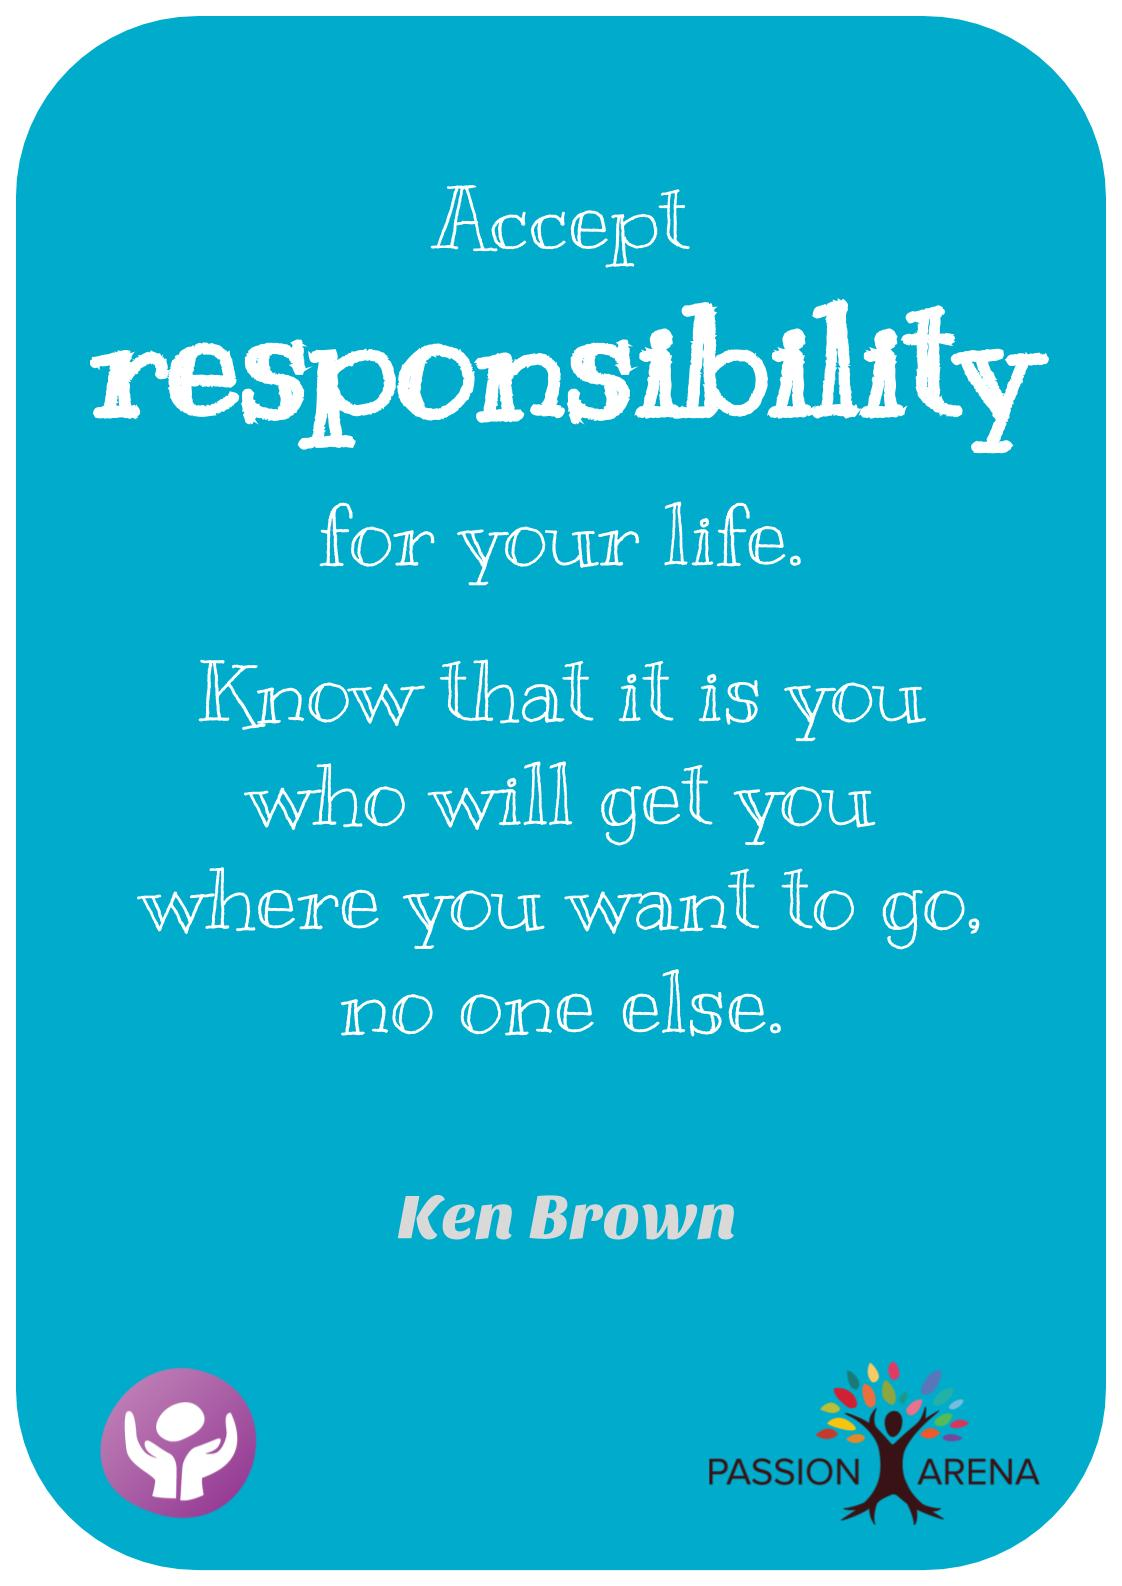 Intro-2-31. Who is responsible for your actions and outcomes?